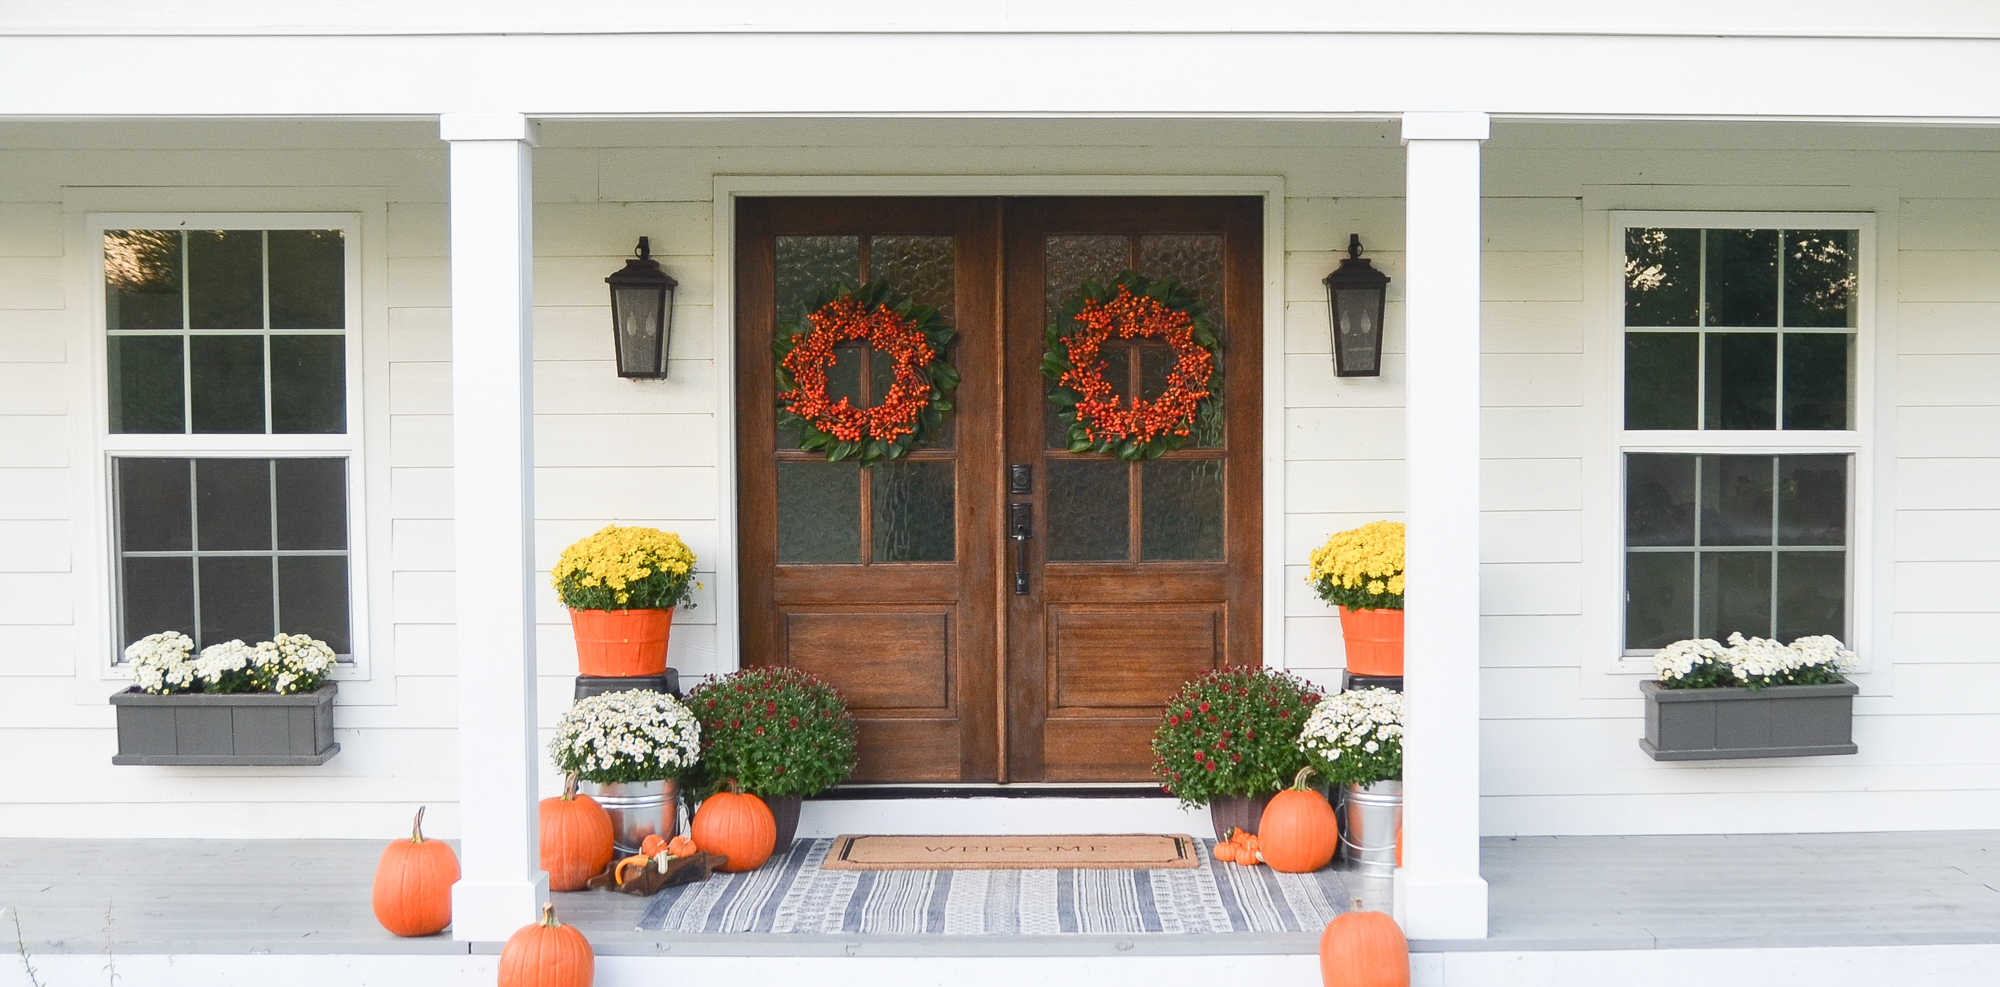 Fall front porch with wreath and pumpkins